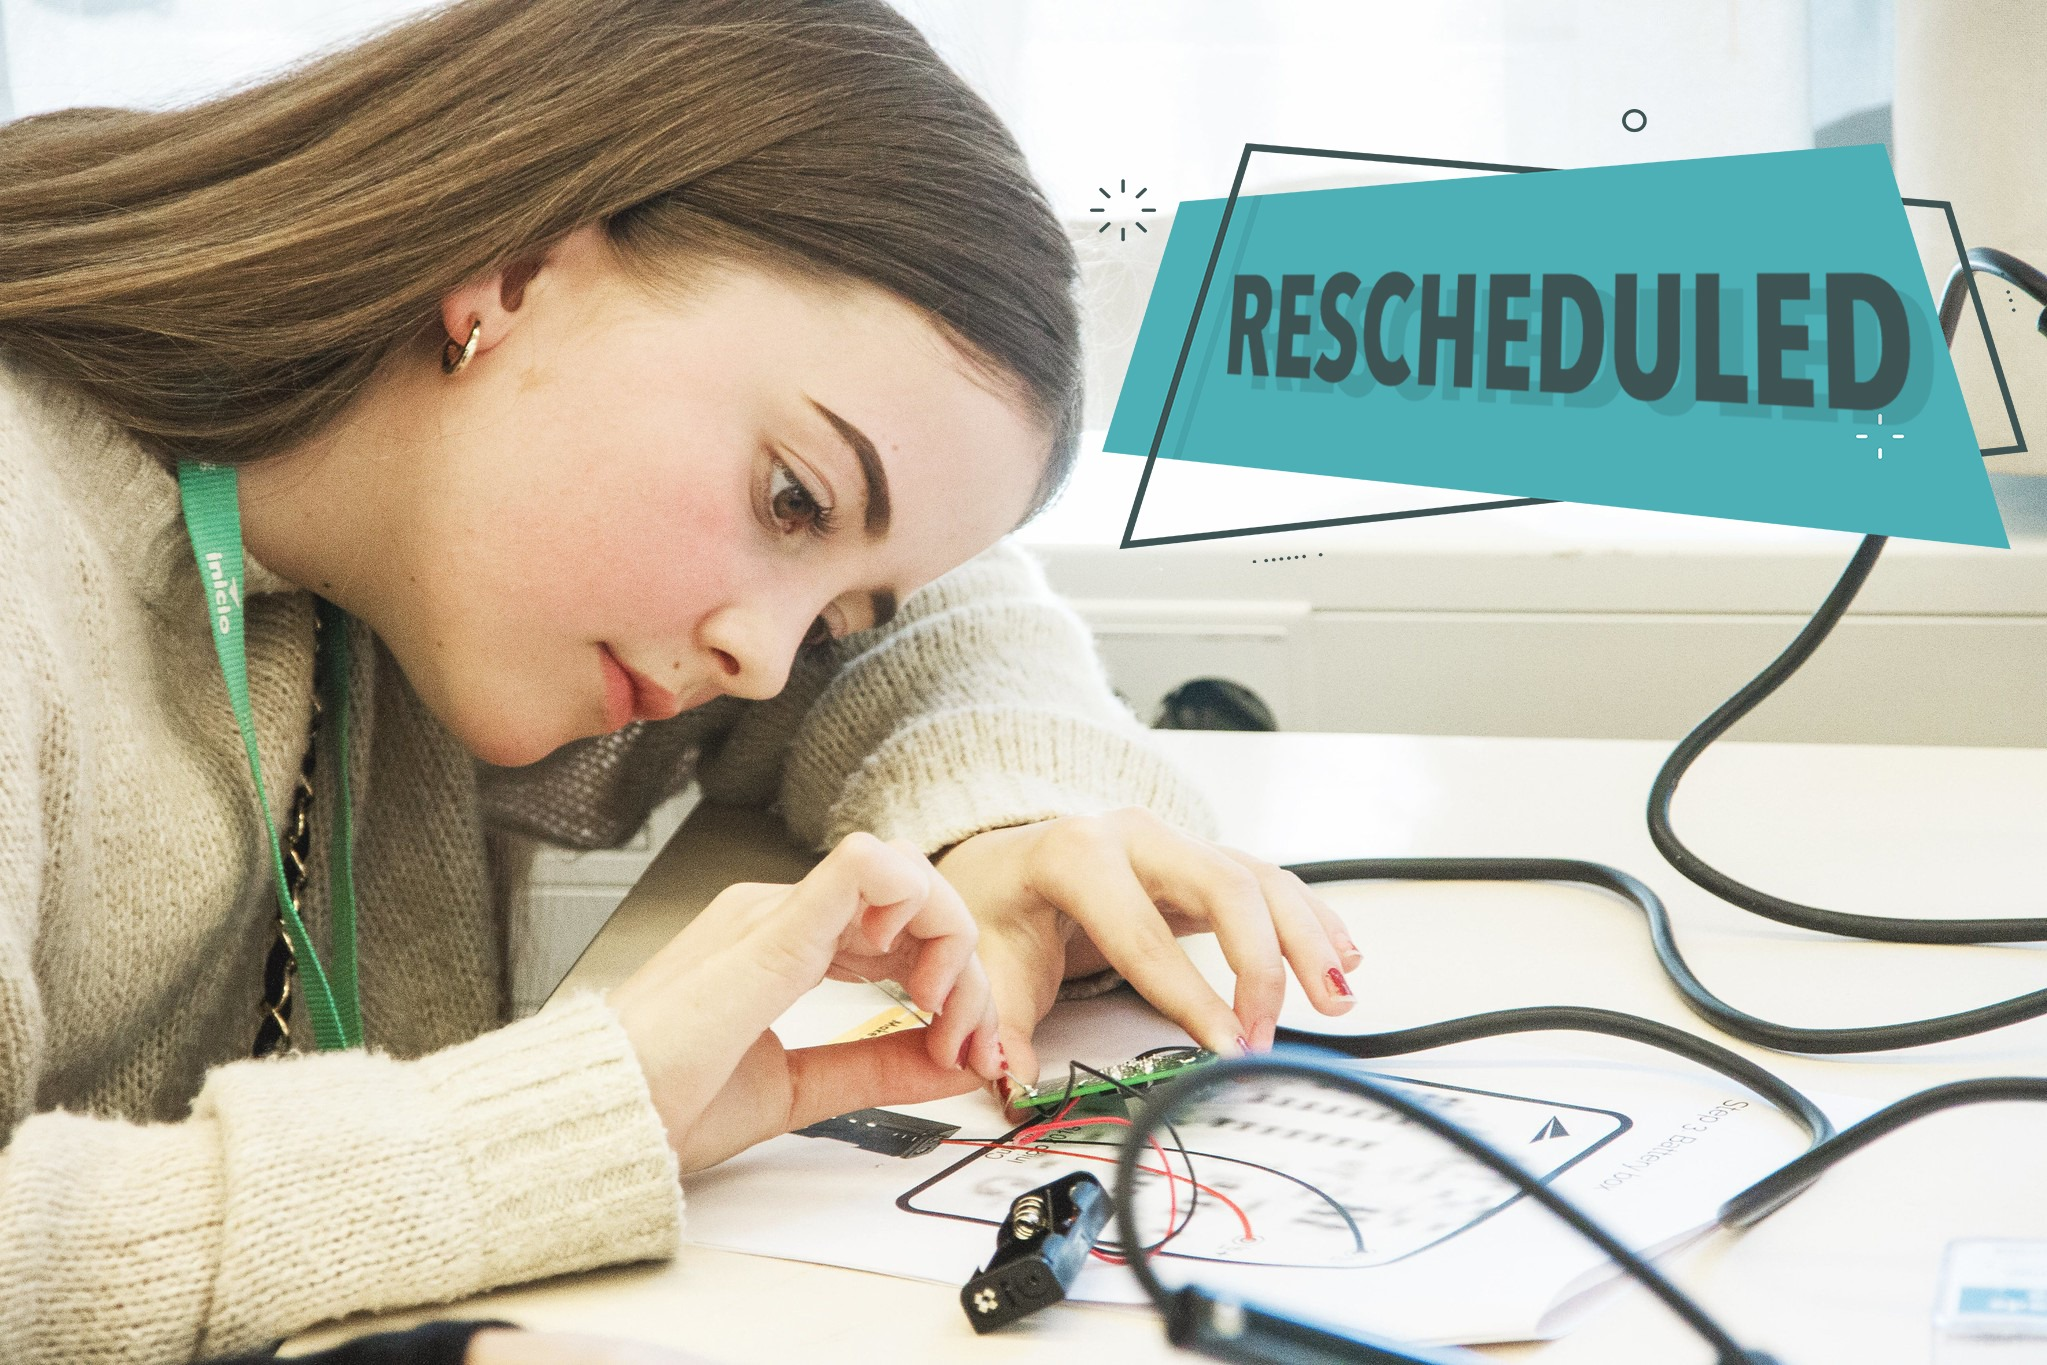 Girl soldering during GirlTechies workshop